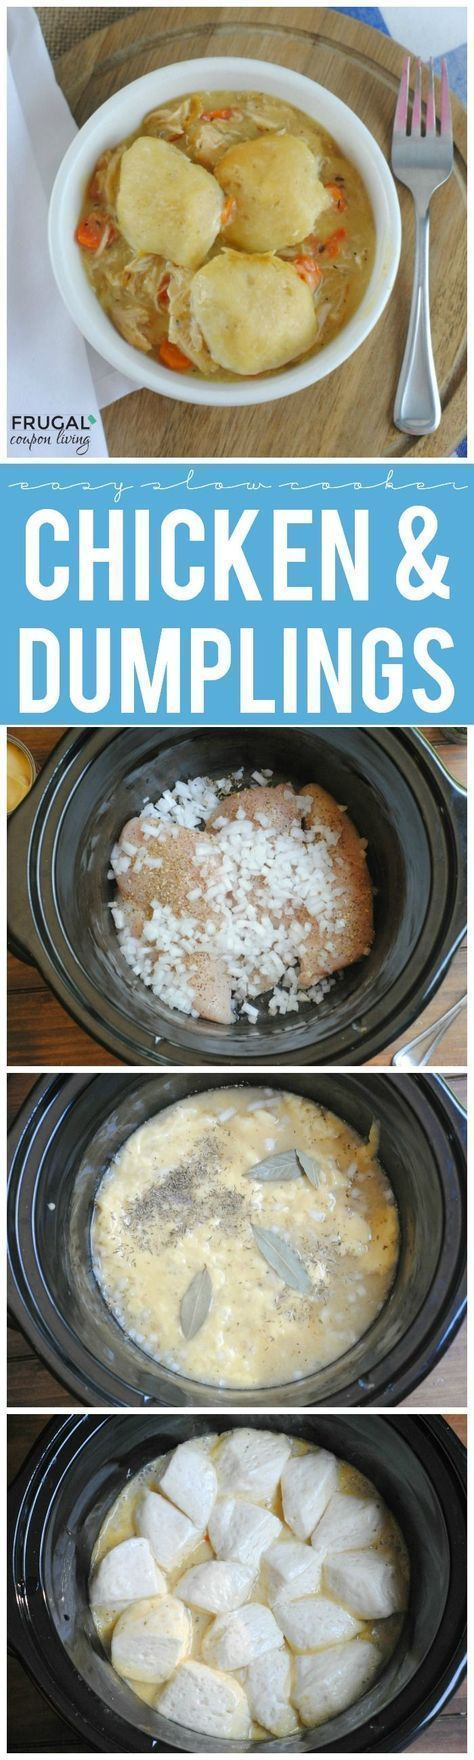 Easy Slow Cooker Chicken and Dumplings - We love this easy week night dinner idea. Tasty Dumplings made with Refrigerated Biscuits. Dump, cook, devour! #pillsbury #recipes #chickenanddumplings #chickenrecipe #dumplings #chicken #slowcooker #slowcookerrecipe #crockpot #CrockPotRecipes